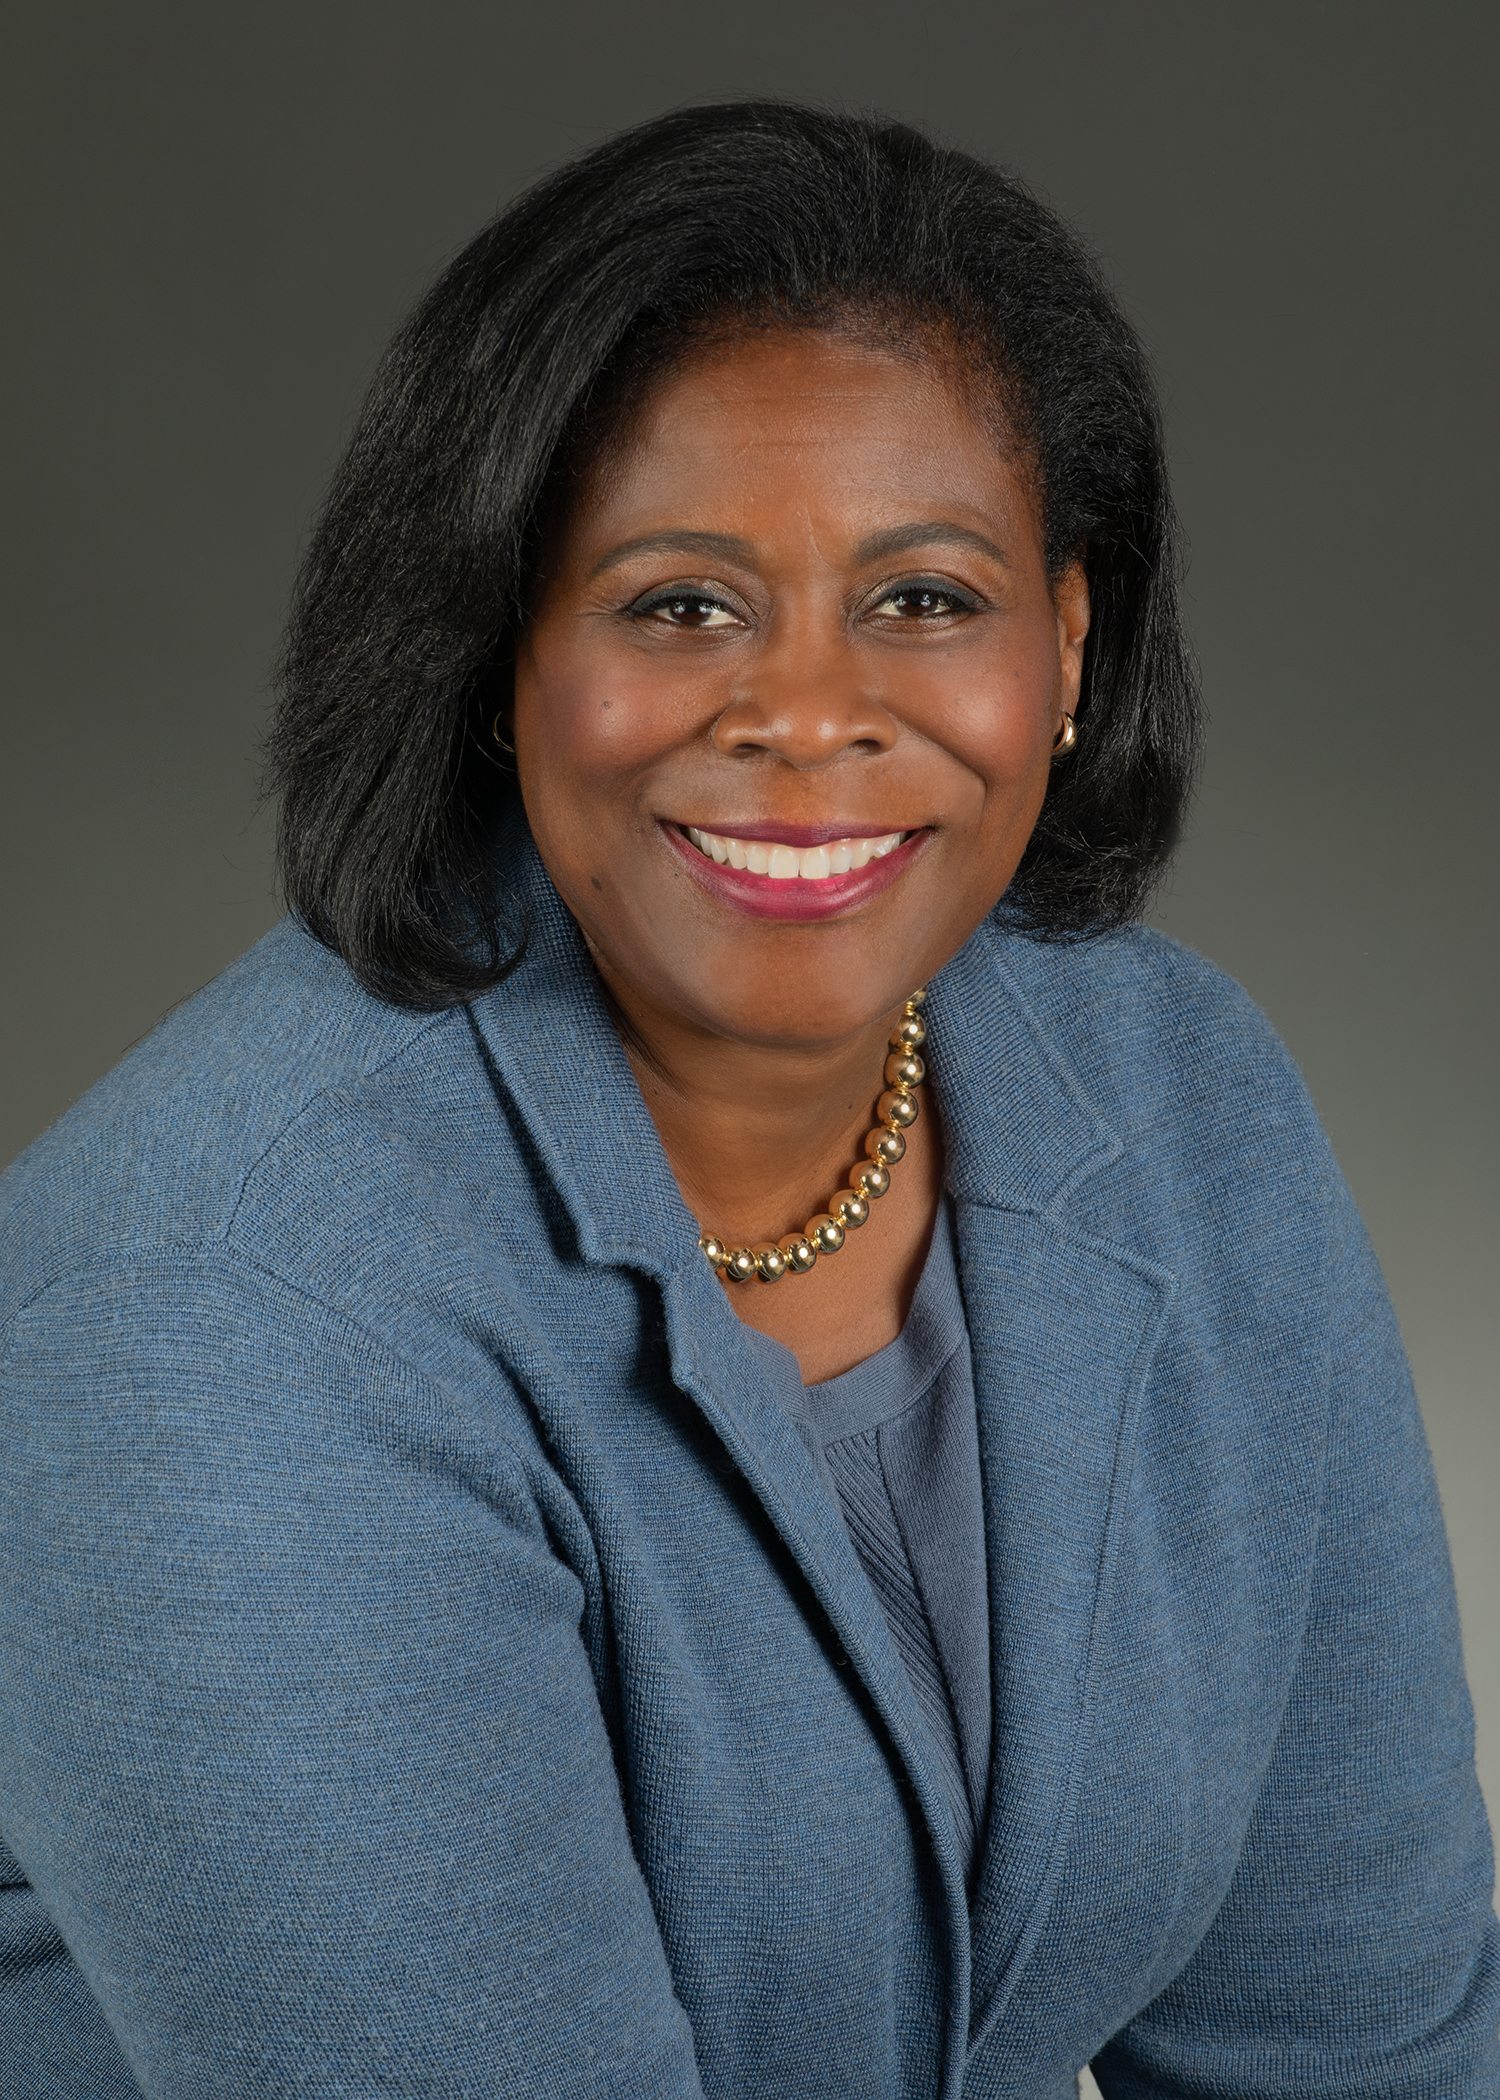 City of Lauderhill Commission Unanimously Appoints a New City Manager